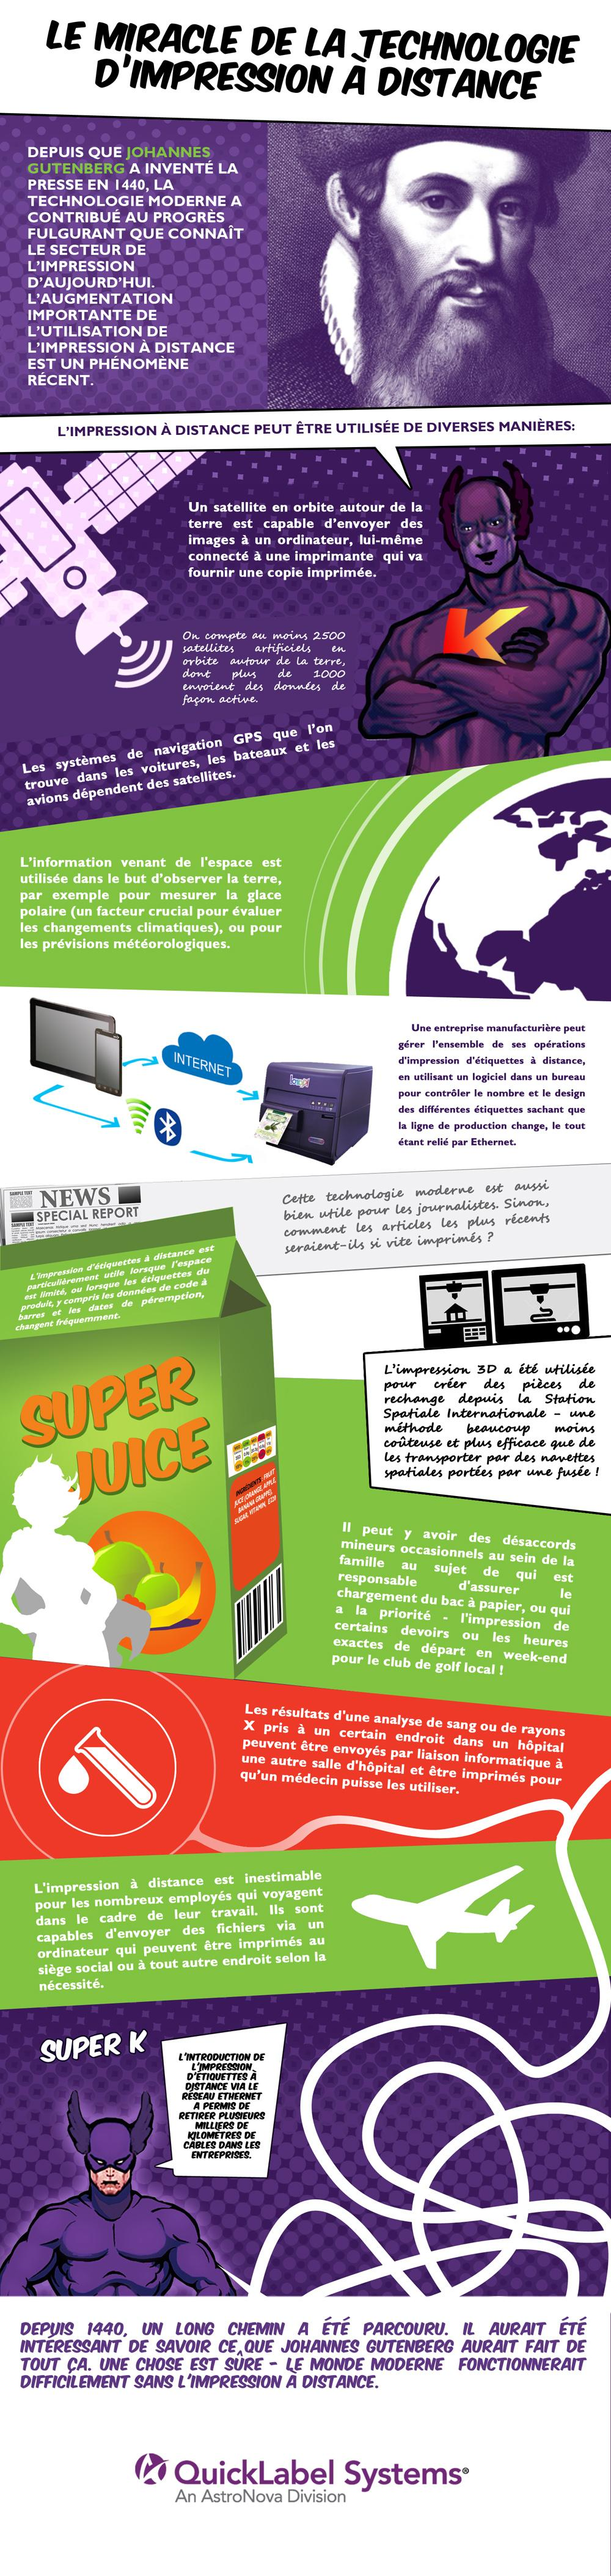 Infographic in French, technology of remote printing.  Written for Quicklabel in French for sharing on social media.